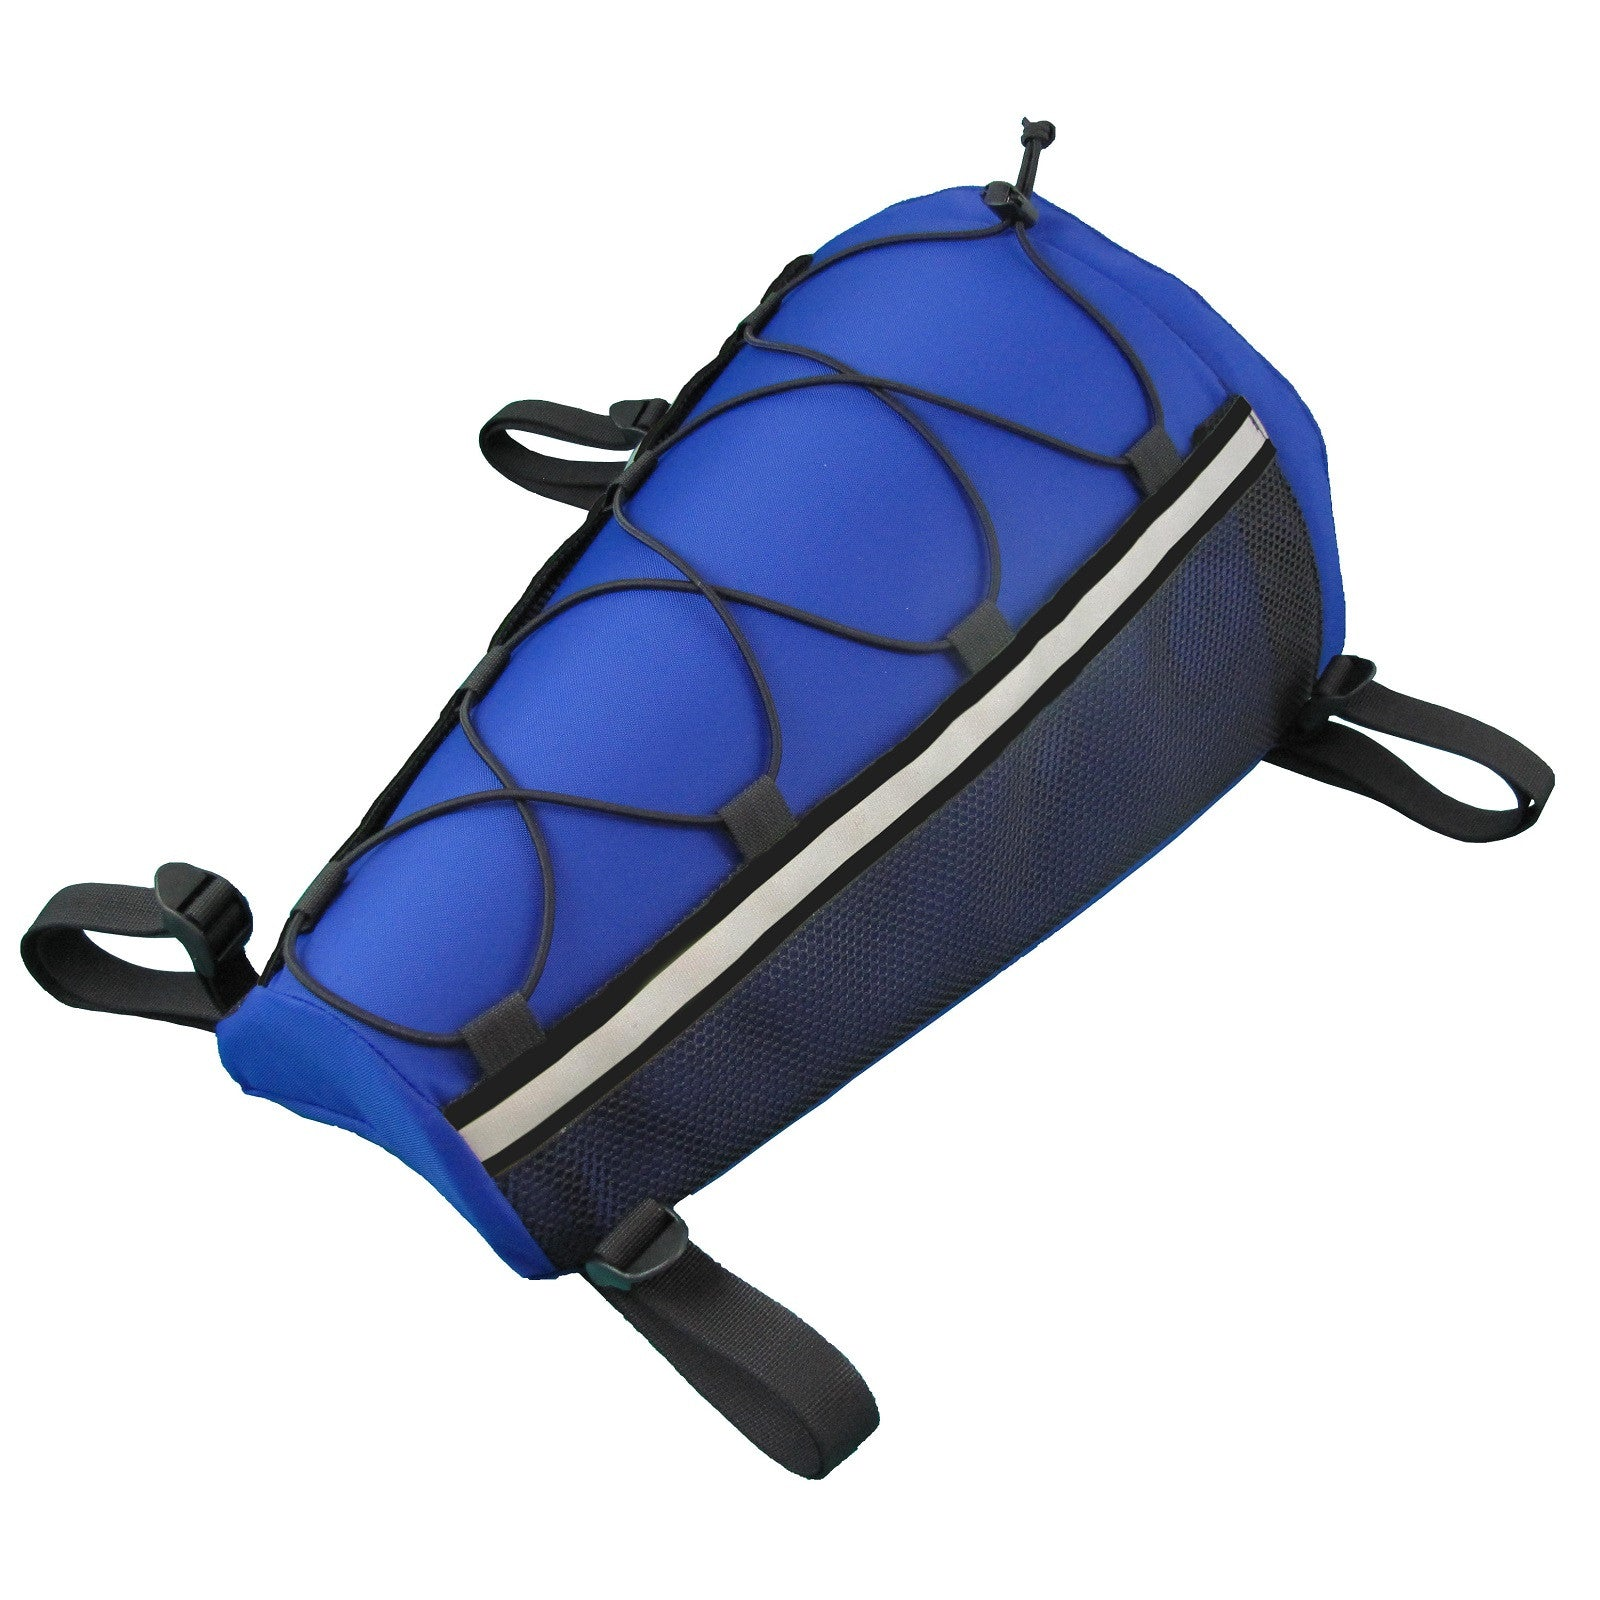 Peaked Deck Bag Blue